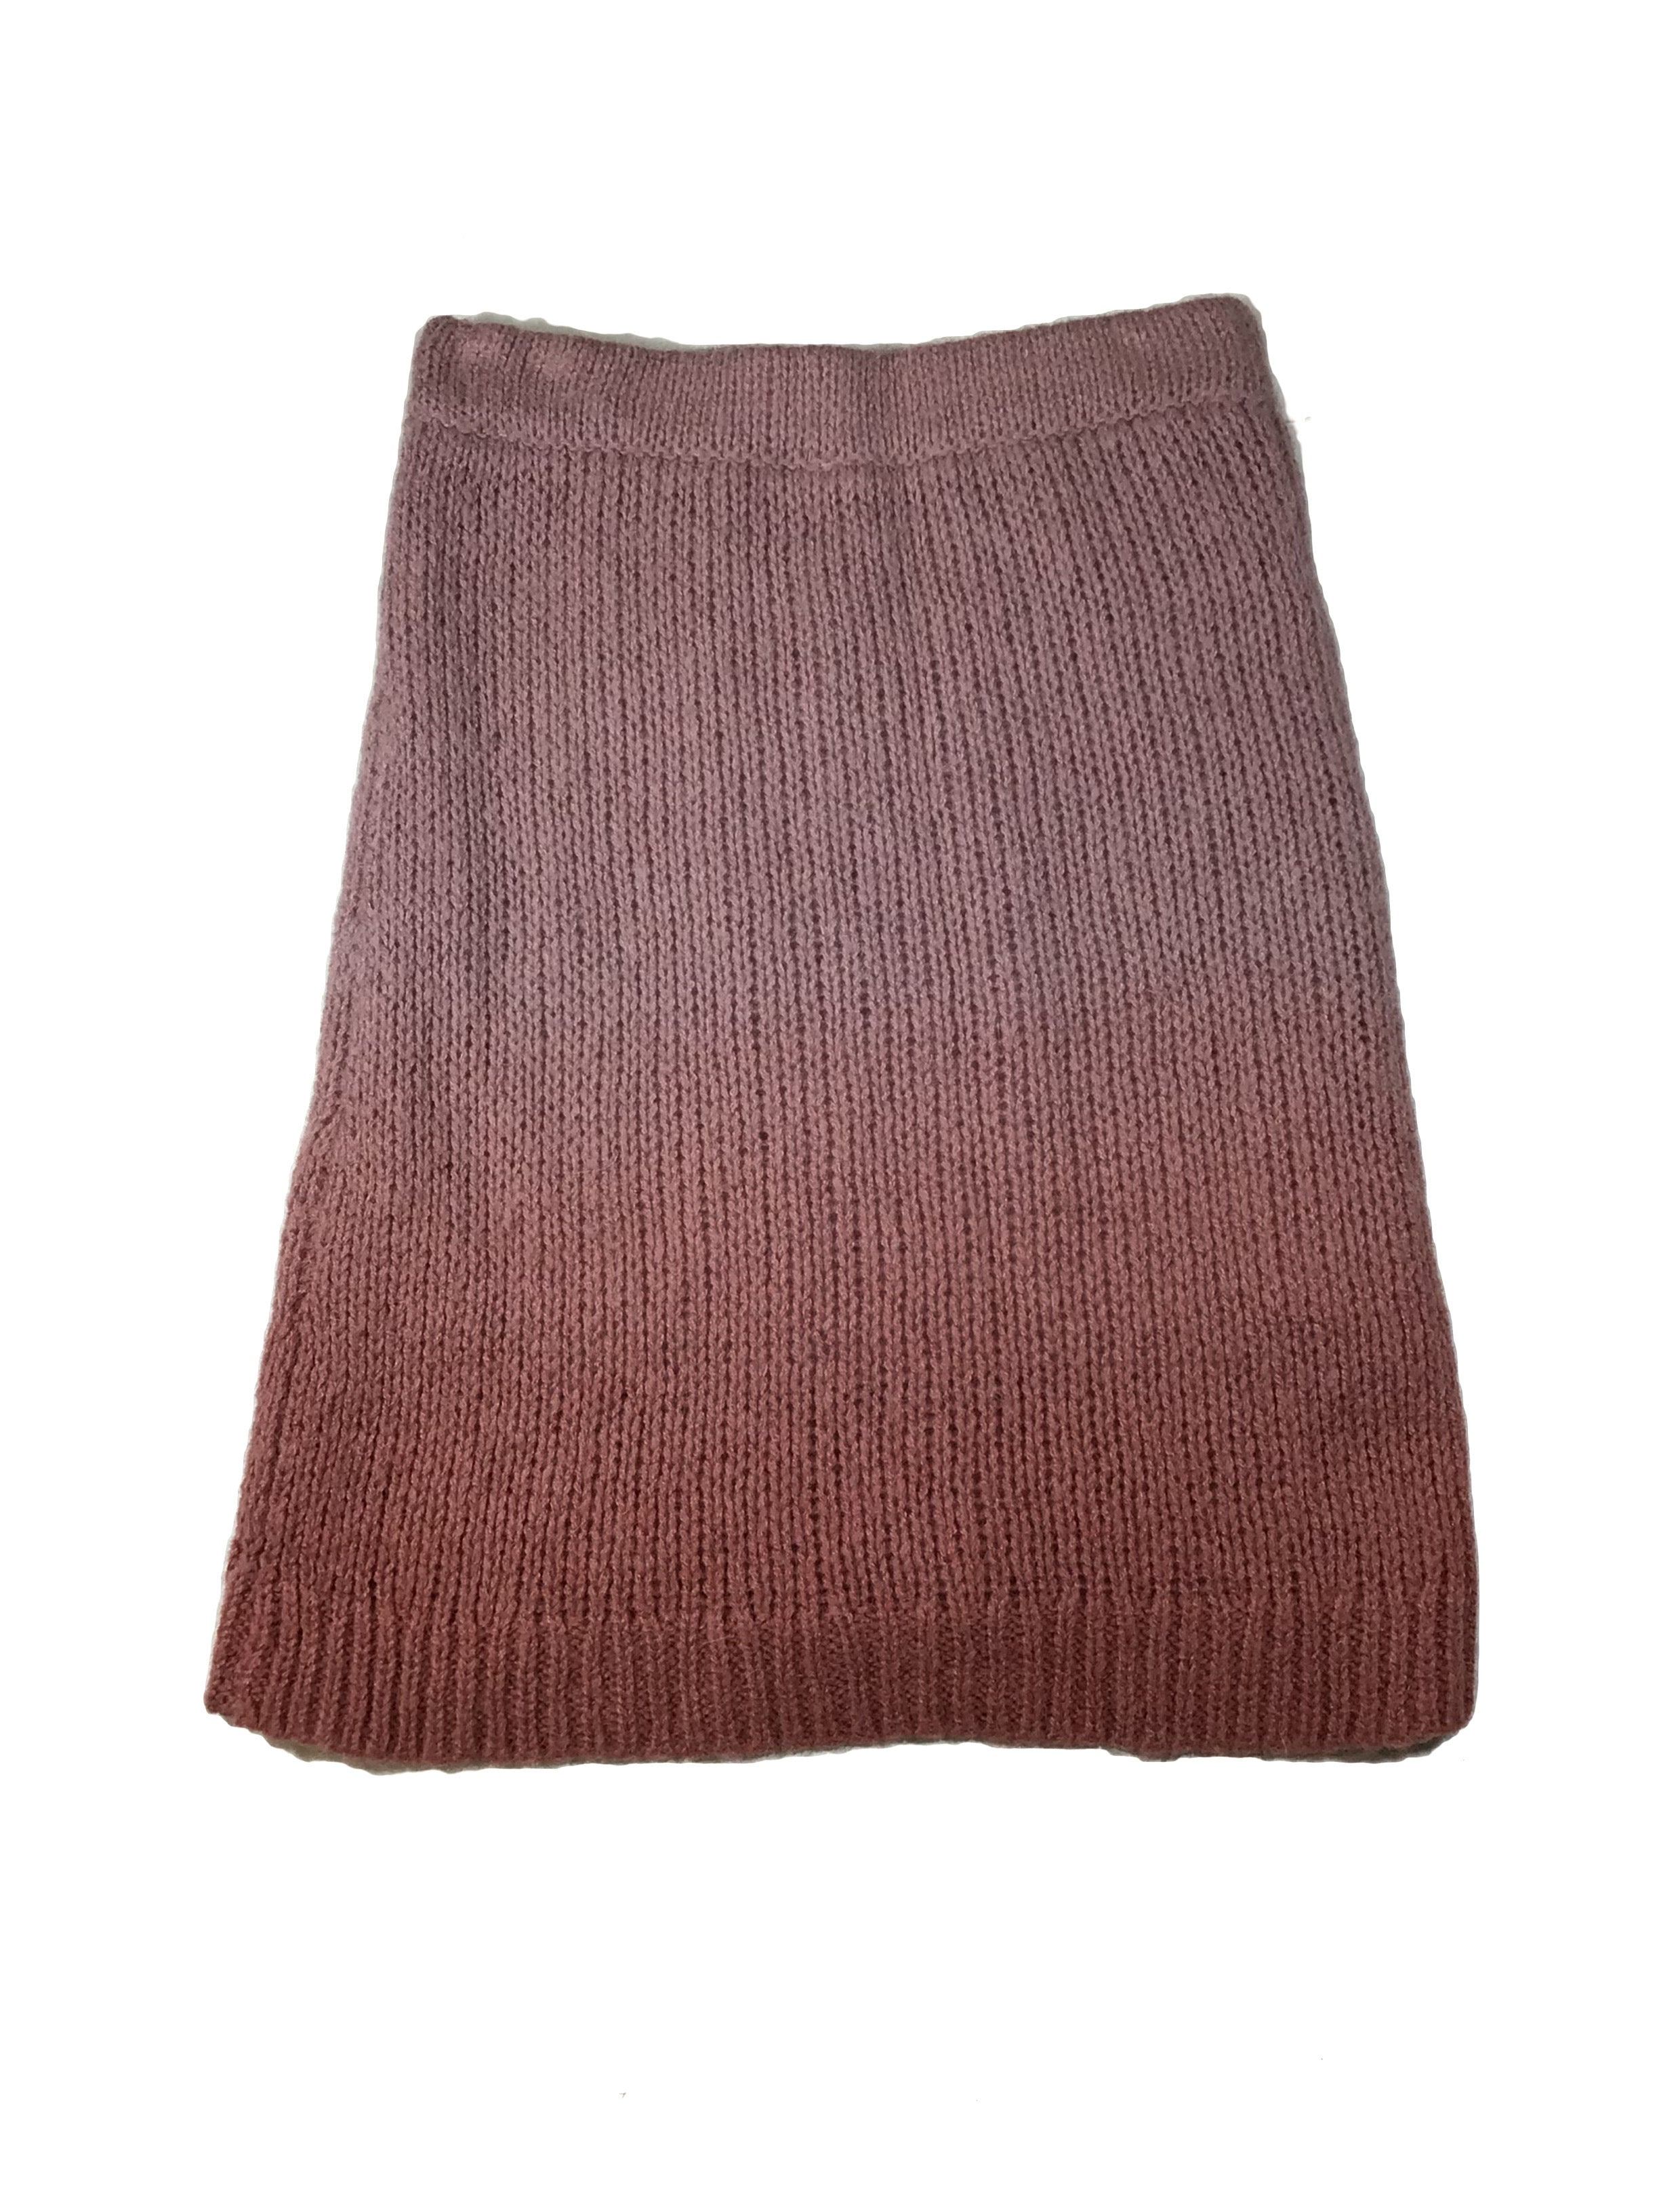 Primary Photo - BRAND: FREE PEOPLE <BR>STYLE: SKIRT <BR>COLOR: PINK <BR>SIZE: XS <BR>SKU: 213-213150-154